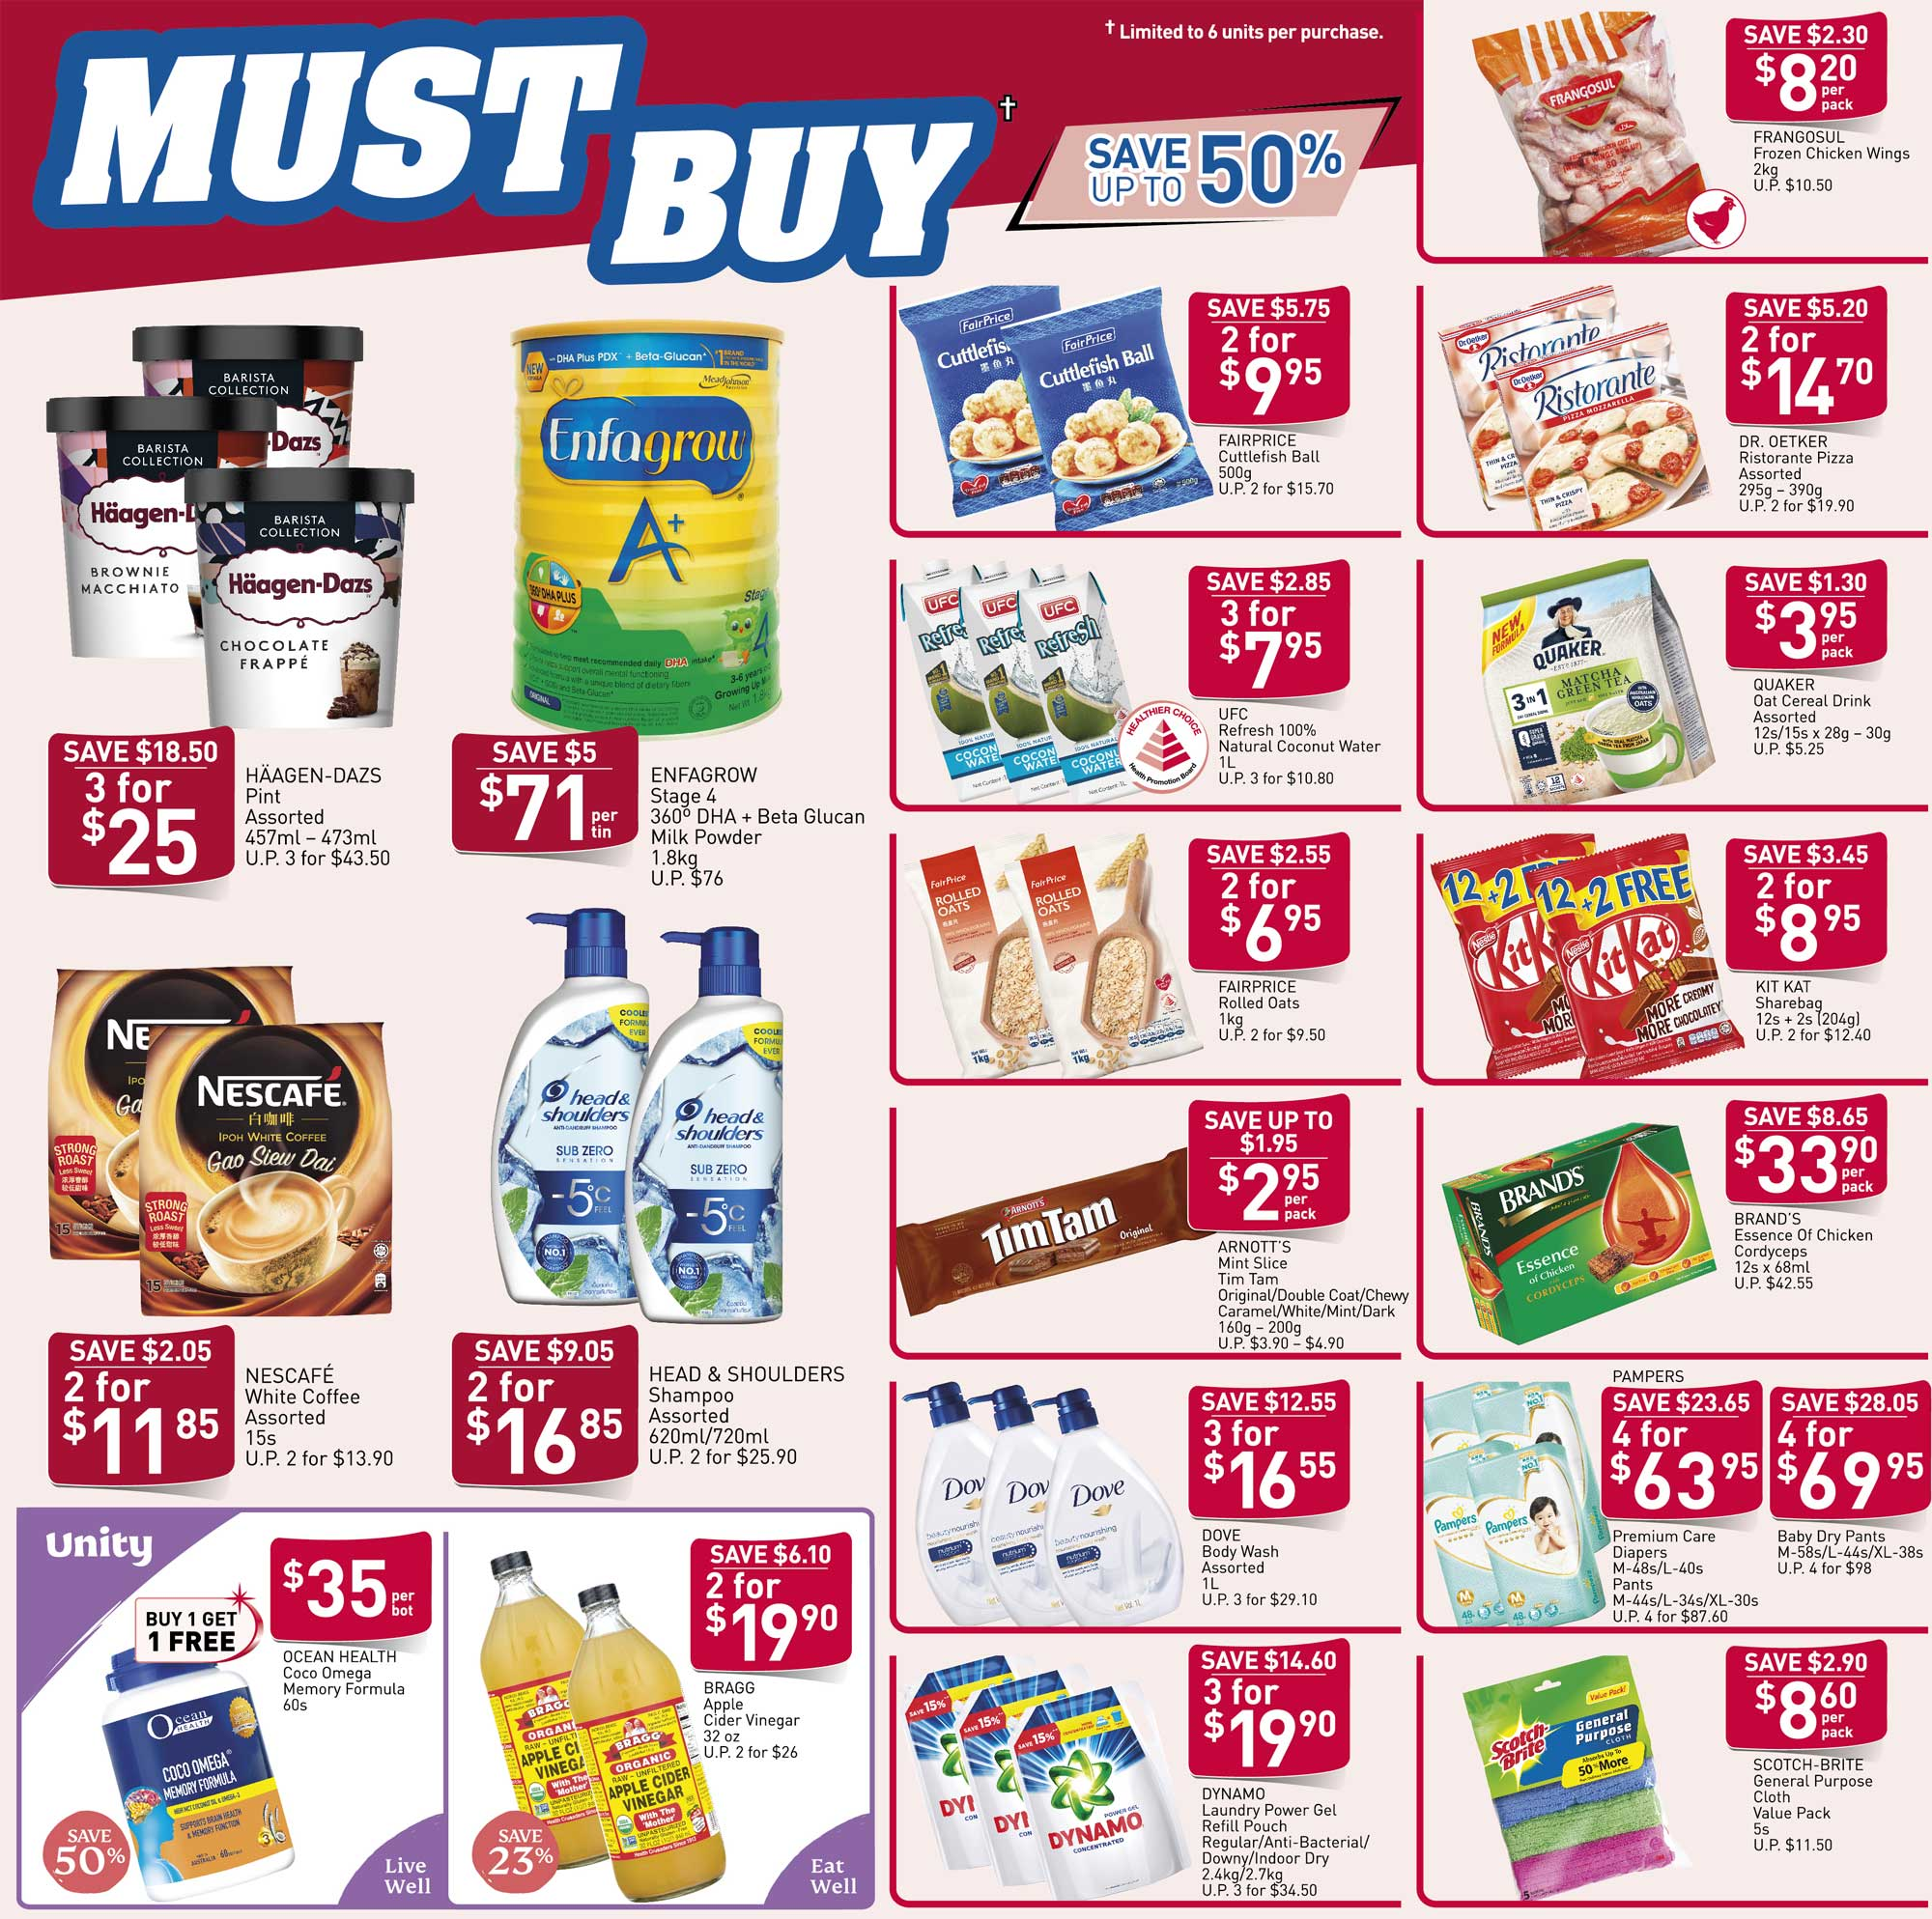 NTUC FairPrice SG Your Weekly Saver Promotion 26 Mar - 1 Apr 2020 | Why Not Deals & Promotions